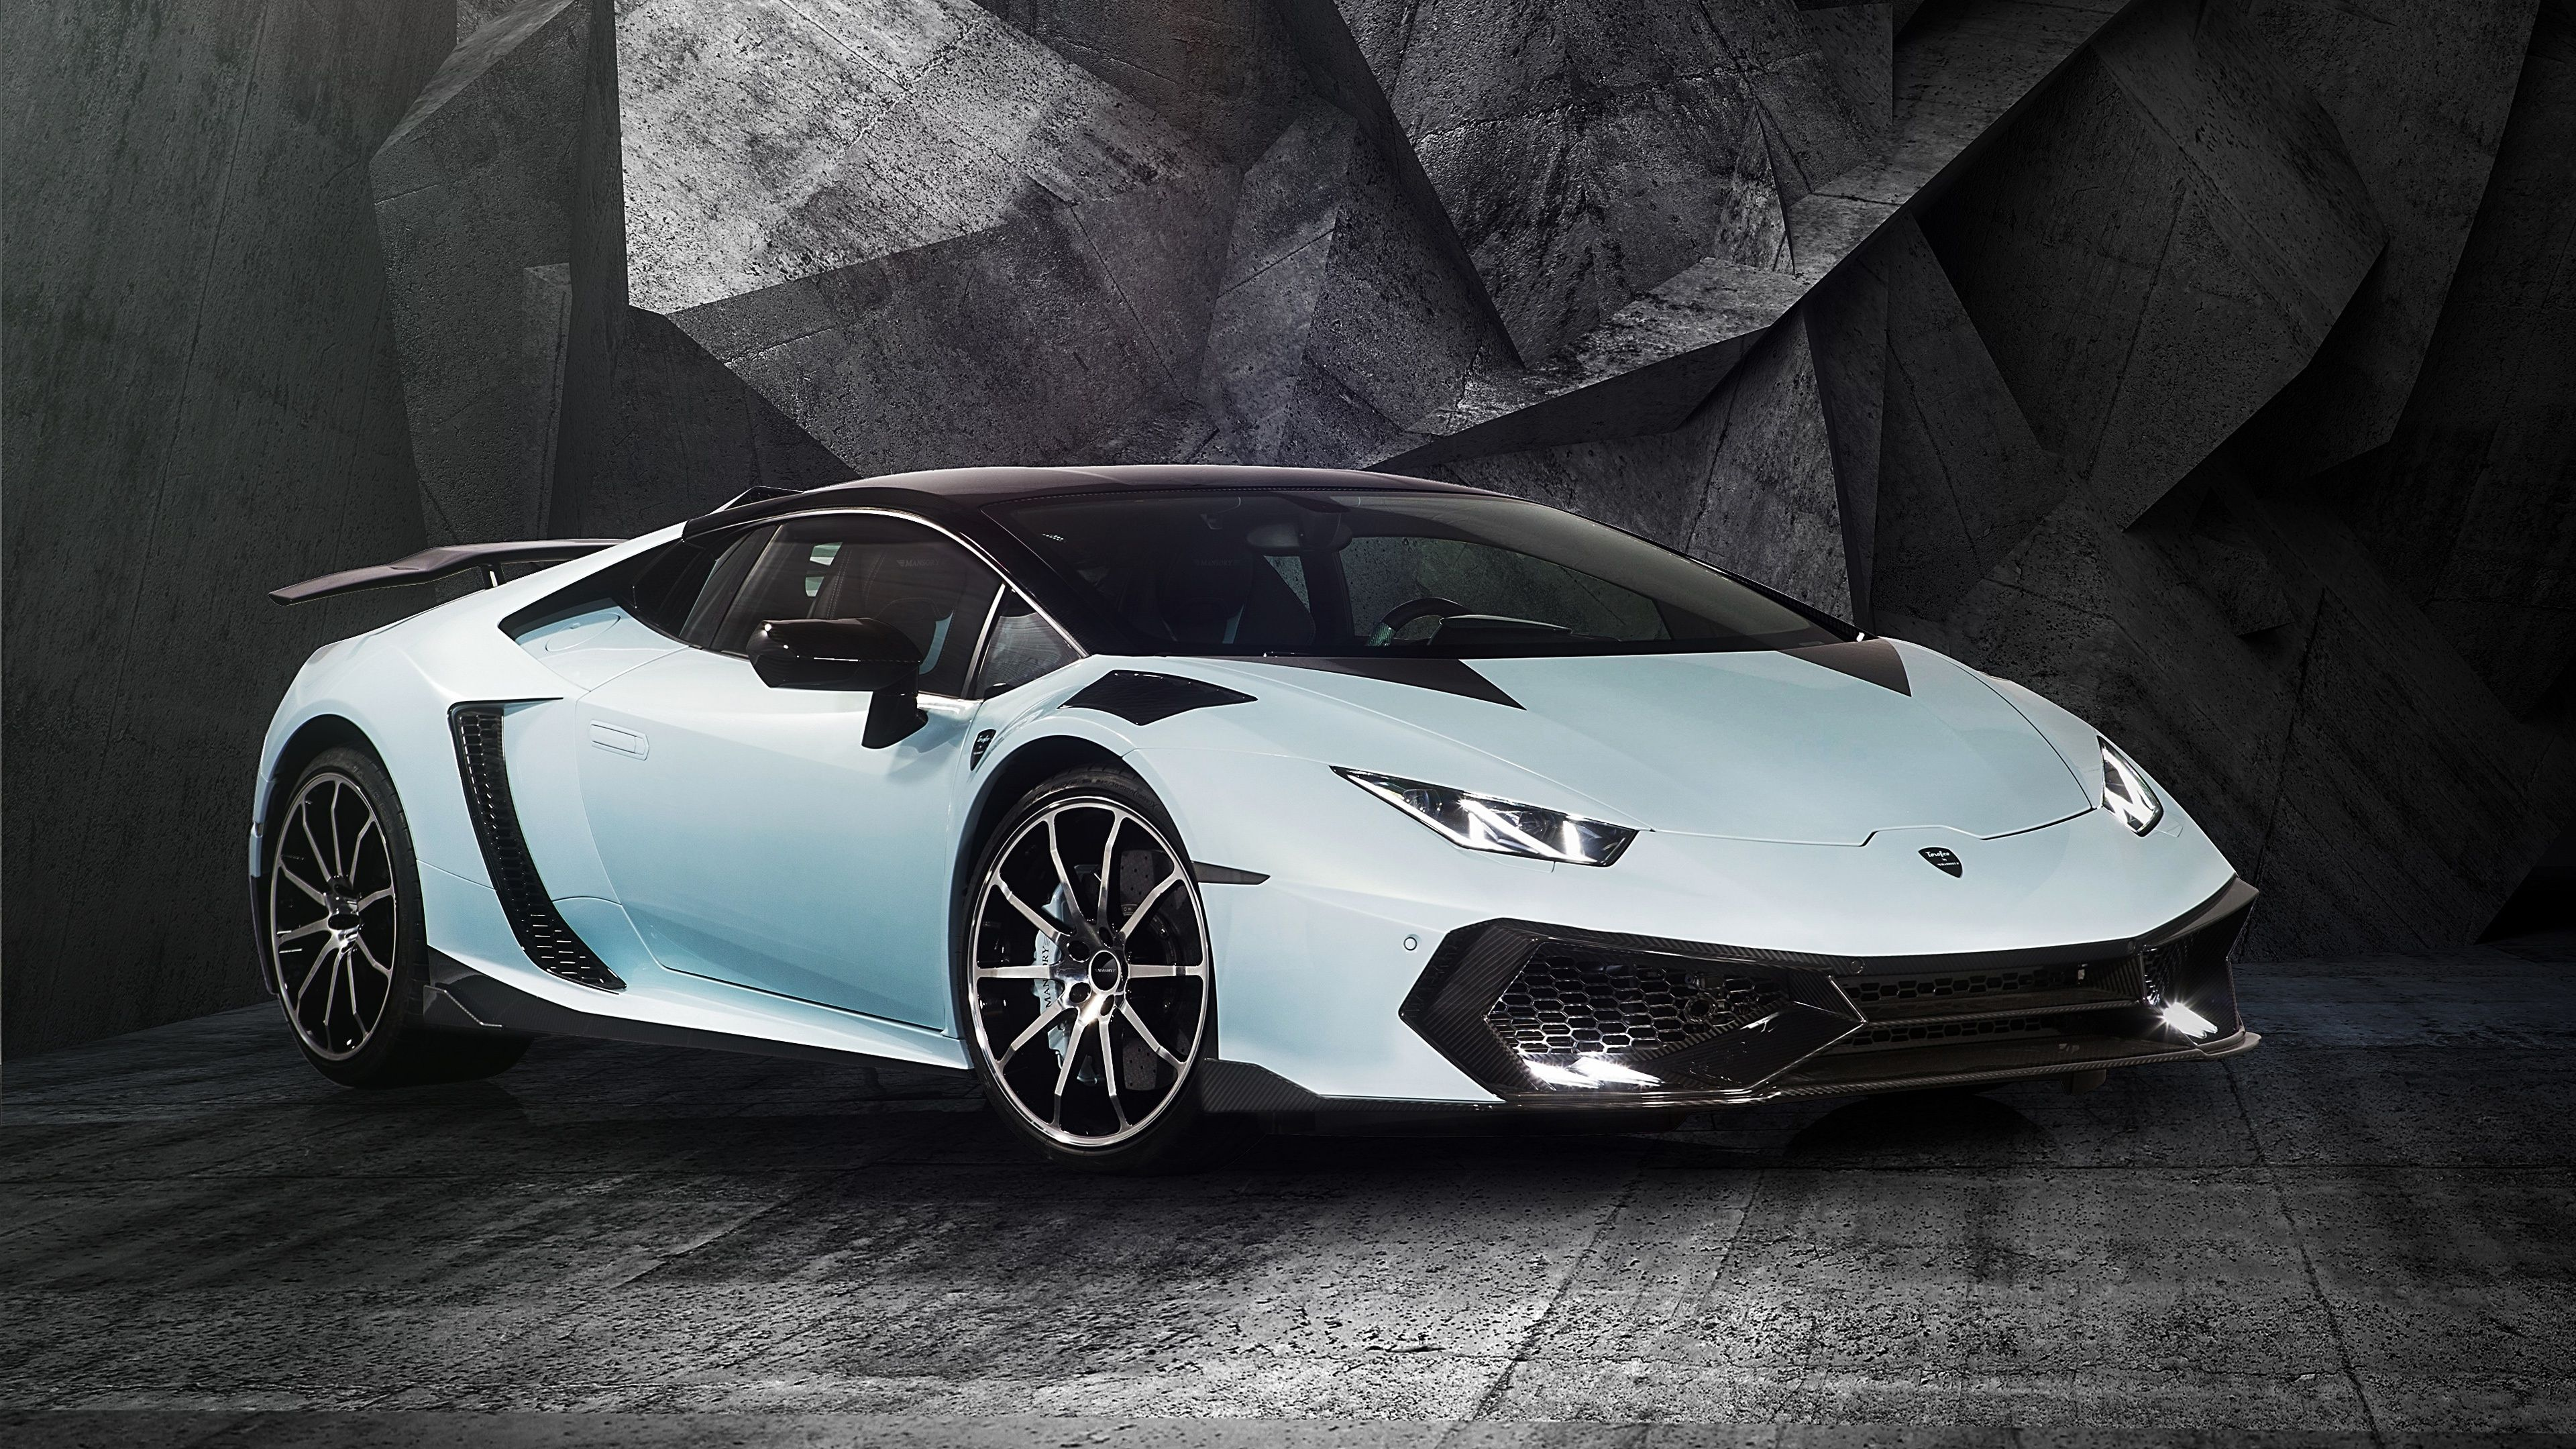 I Donu0027t Know A Man Alive That Would Not Want To Take The Lamborghini Huracan  Mansory Torofeo For A Spin Like You See In This UHD Car Wallpaper Of It.